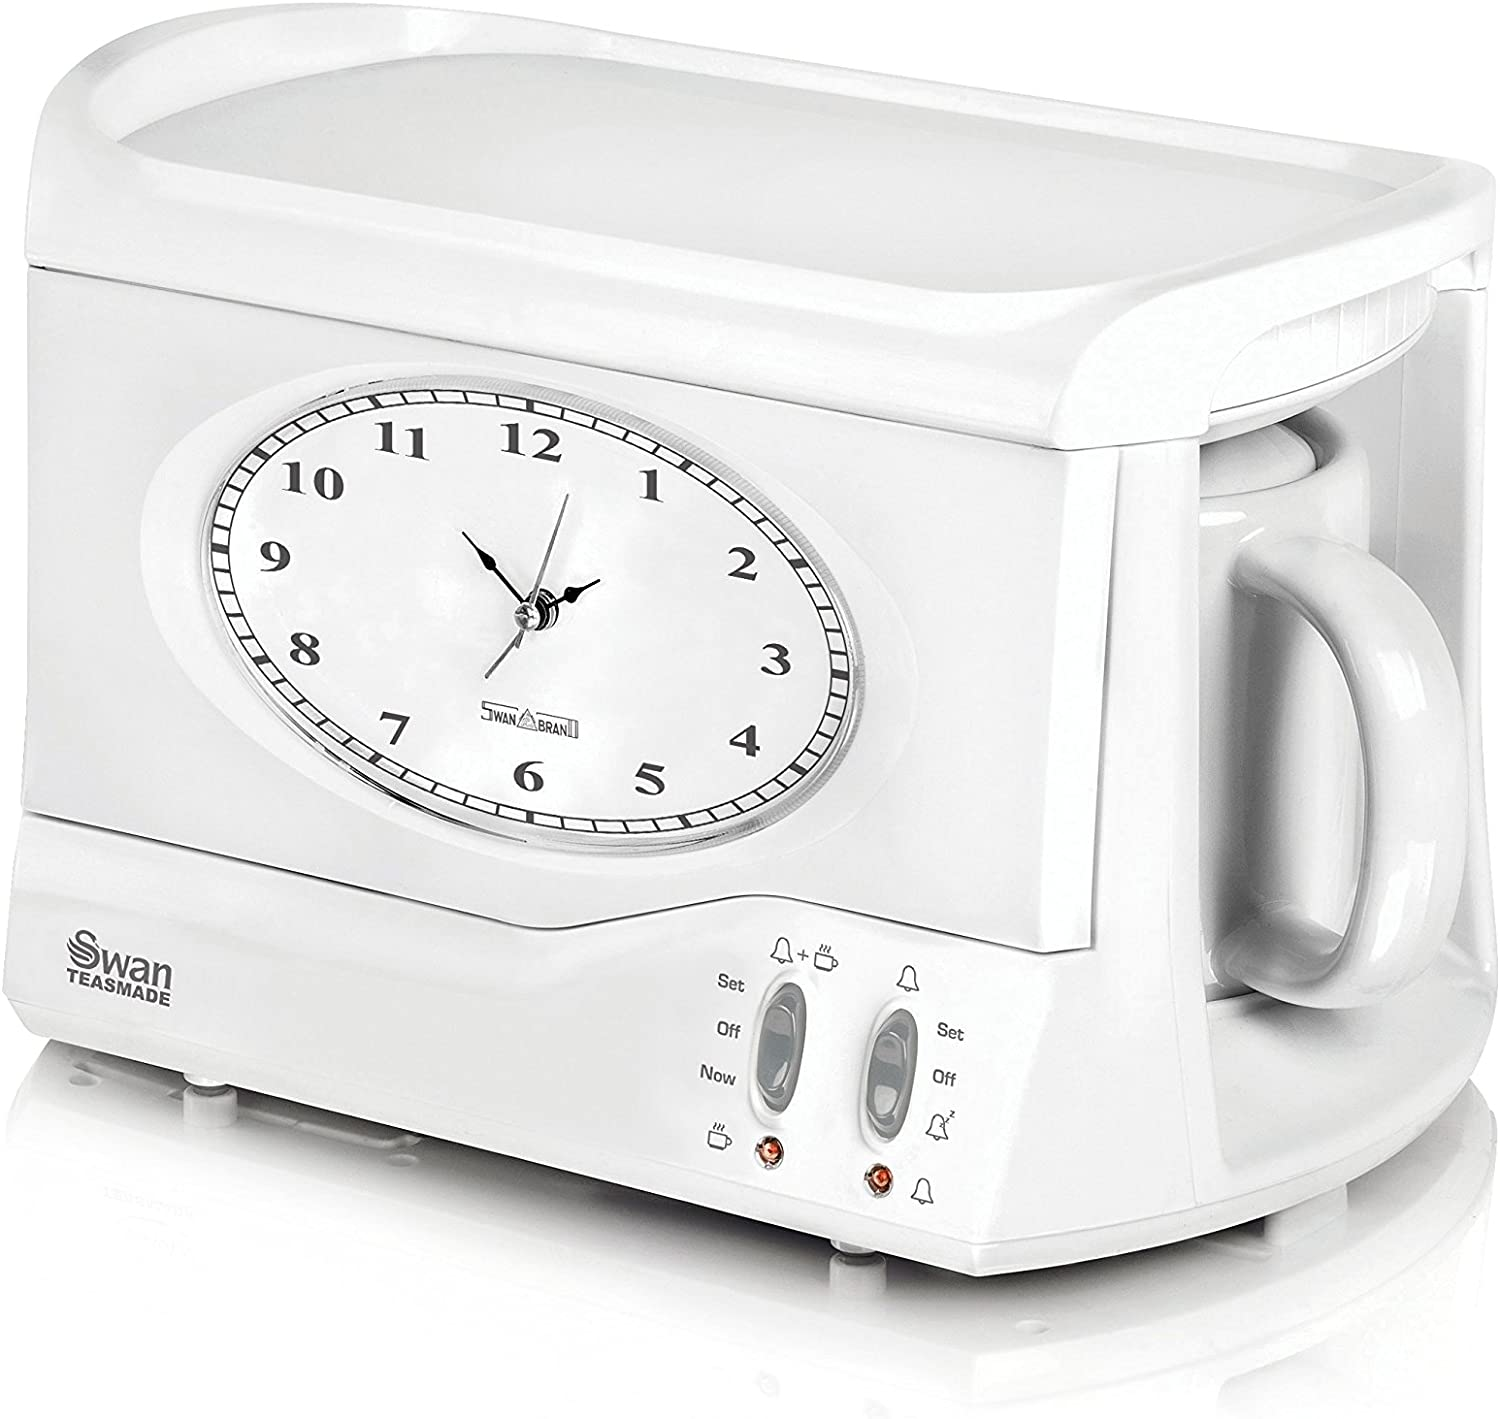 Swan Teasmade. Wake up to a fresh brew and pretend its the 70s all over again.